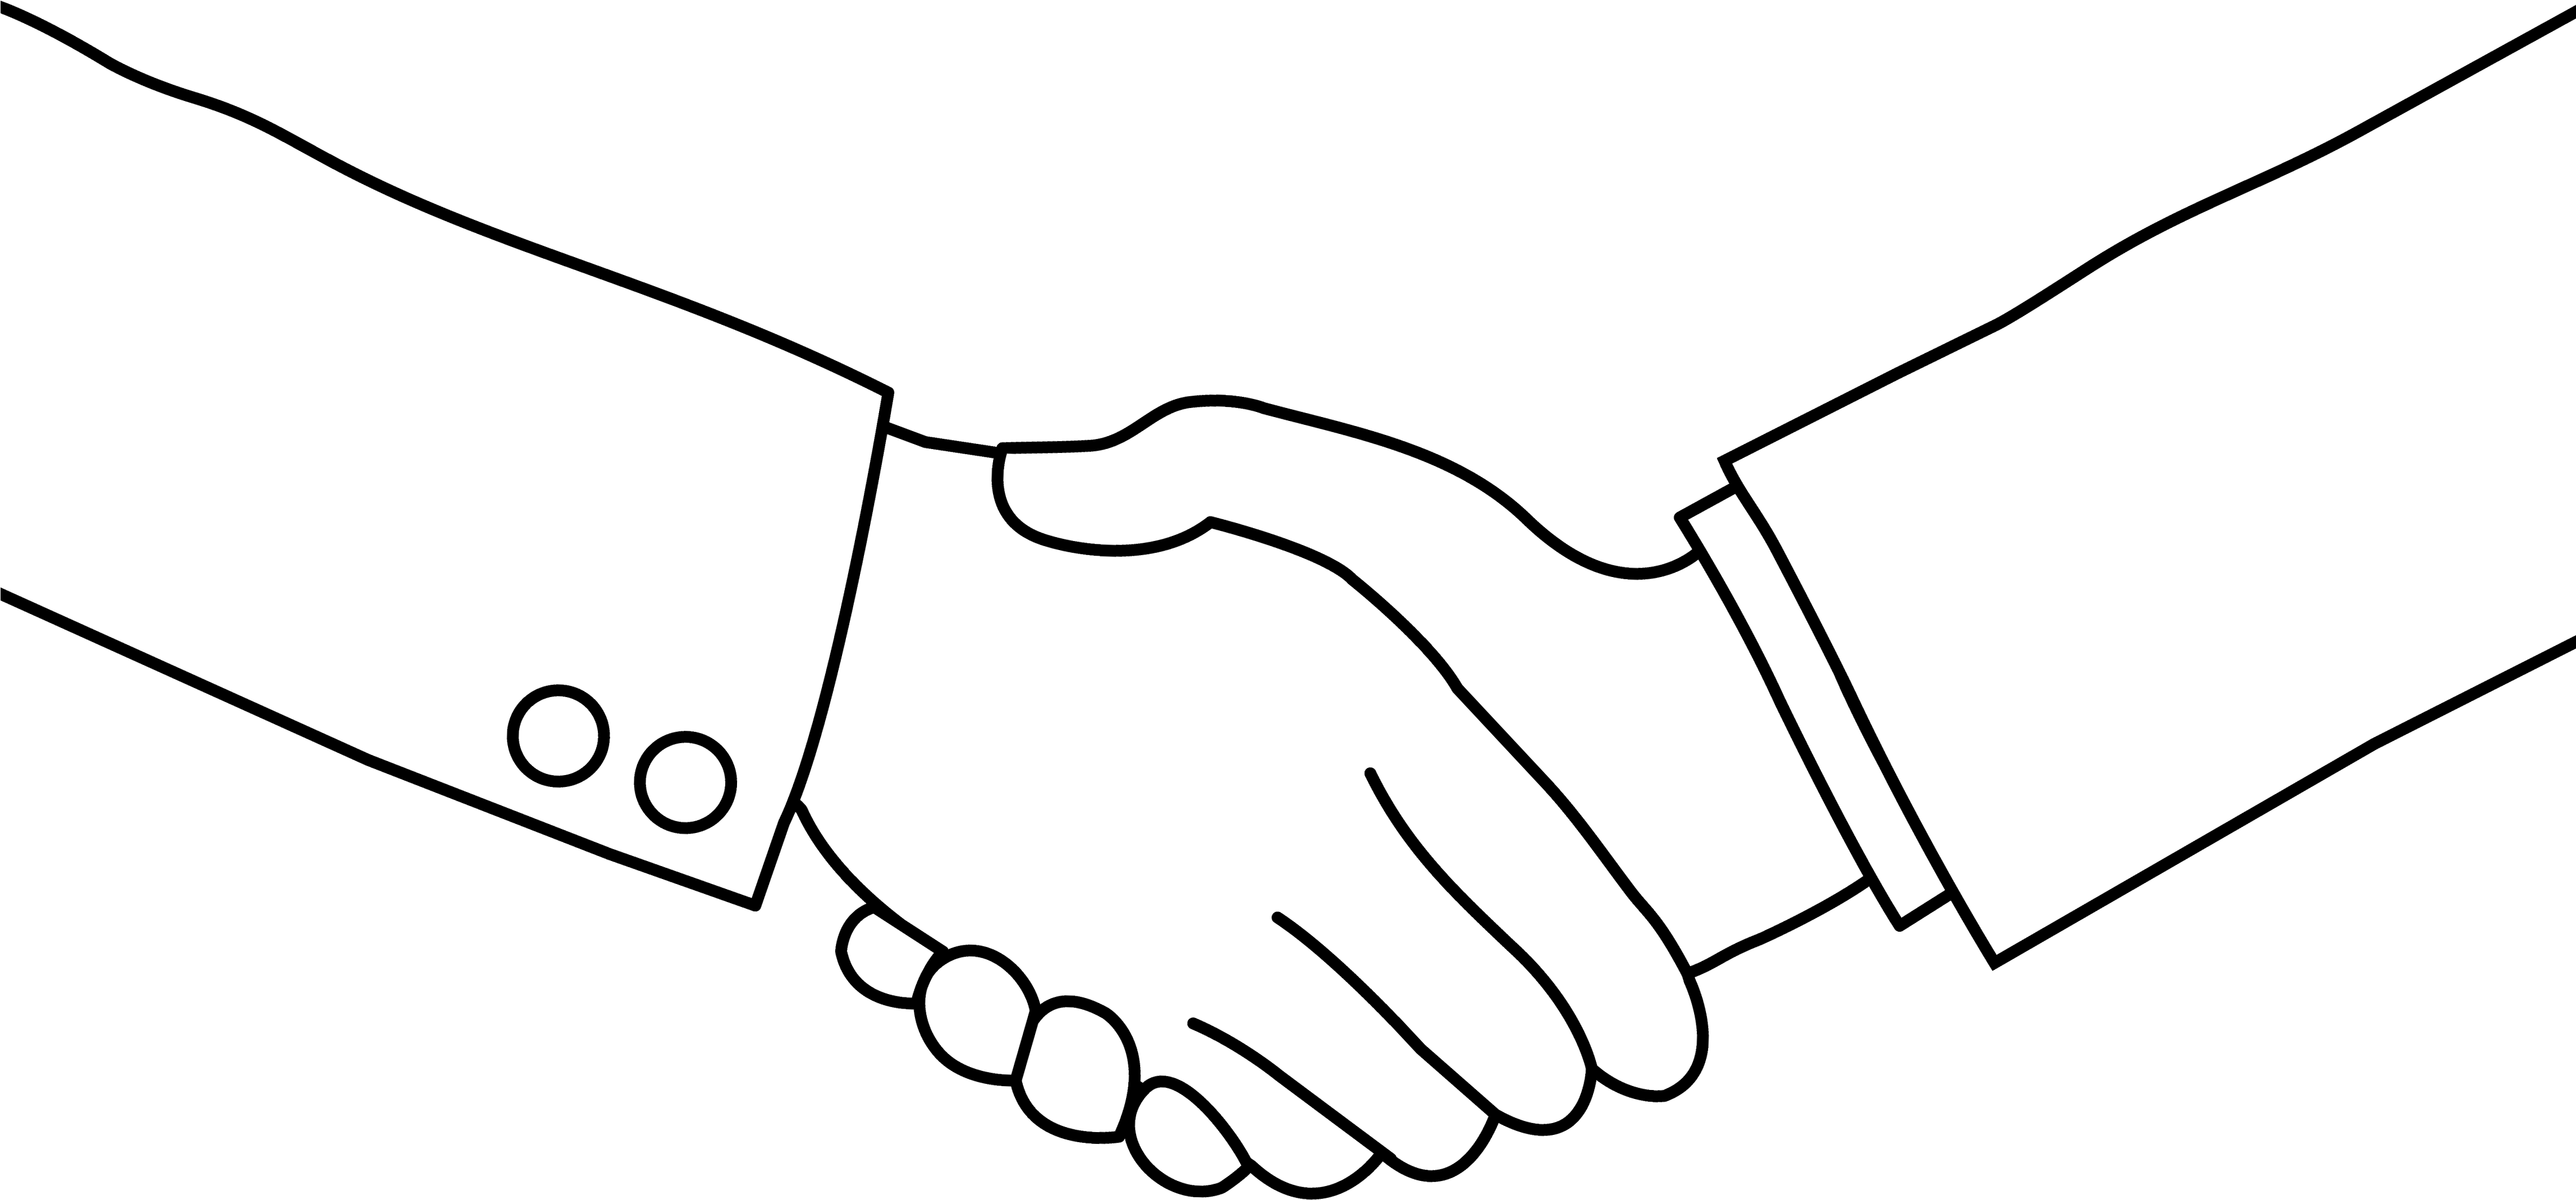 Download Black White Handshake Clipart No Hand Shake Clipart Full Size Png Image Pngkit Earth day clipart black and white. hand shake clipart